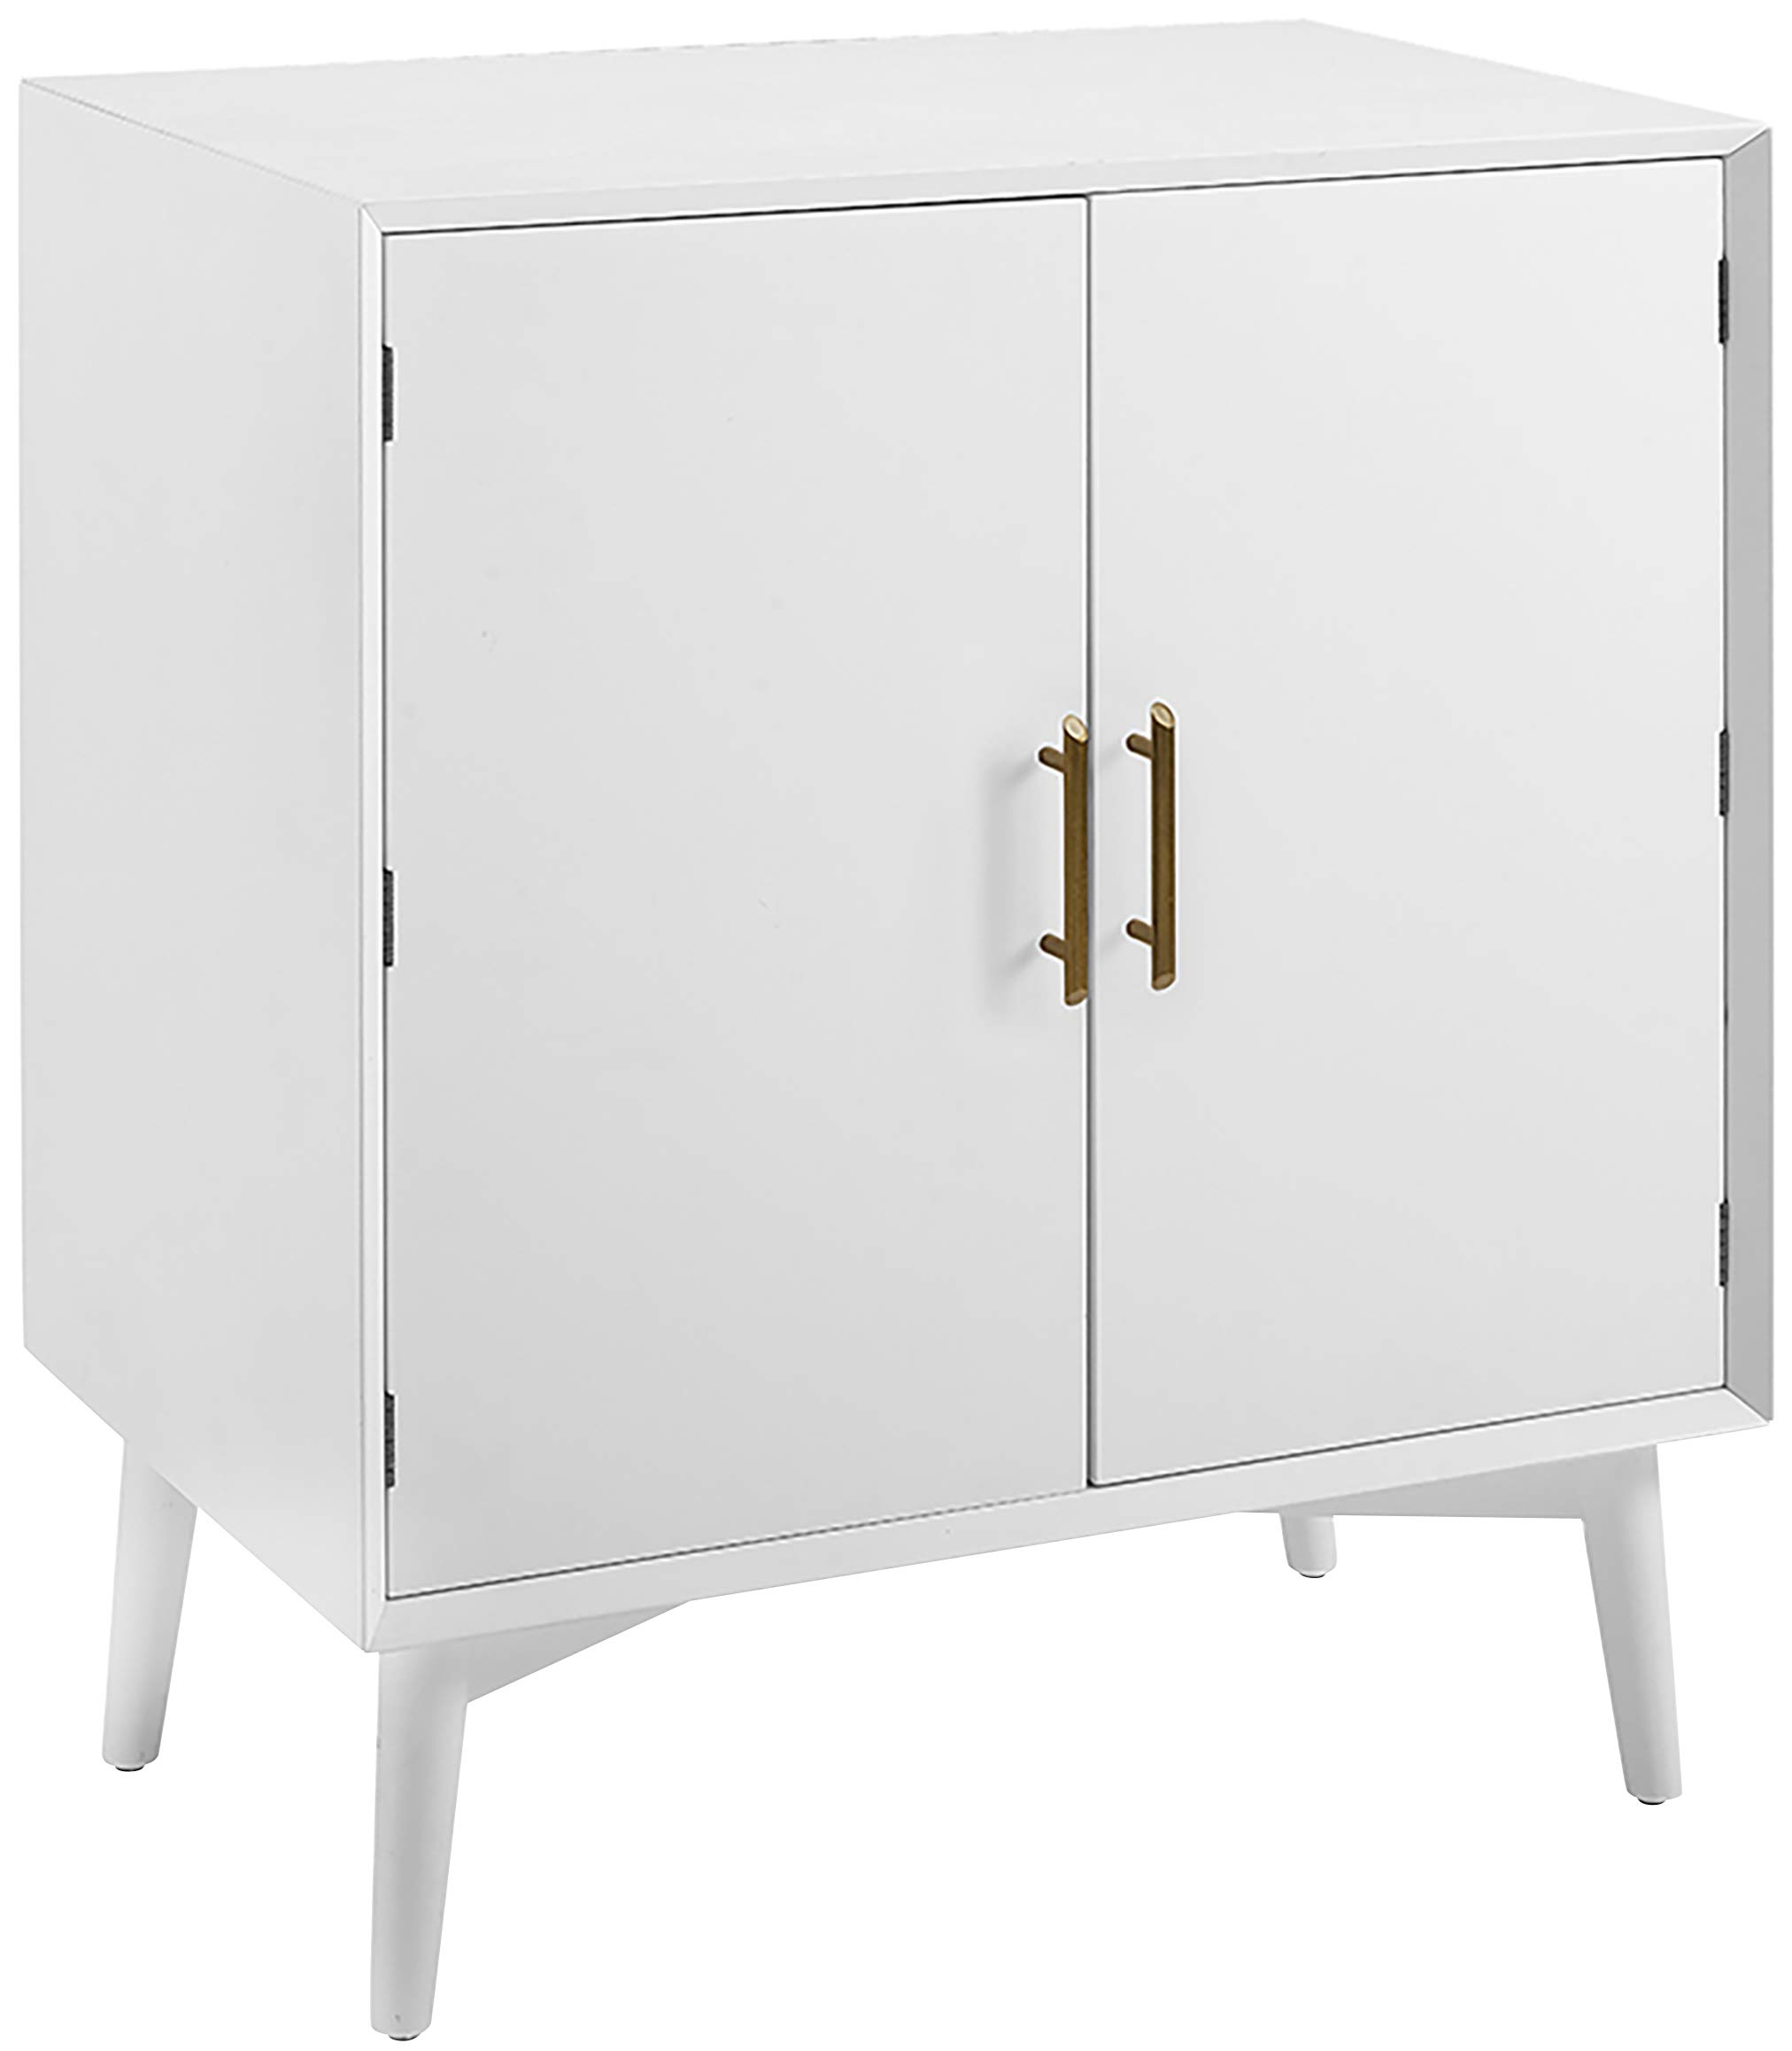 Crosley Furniture Landon Mid-Century Modern Bar Cabinet, White by Crosley Furniture